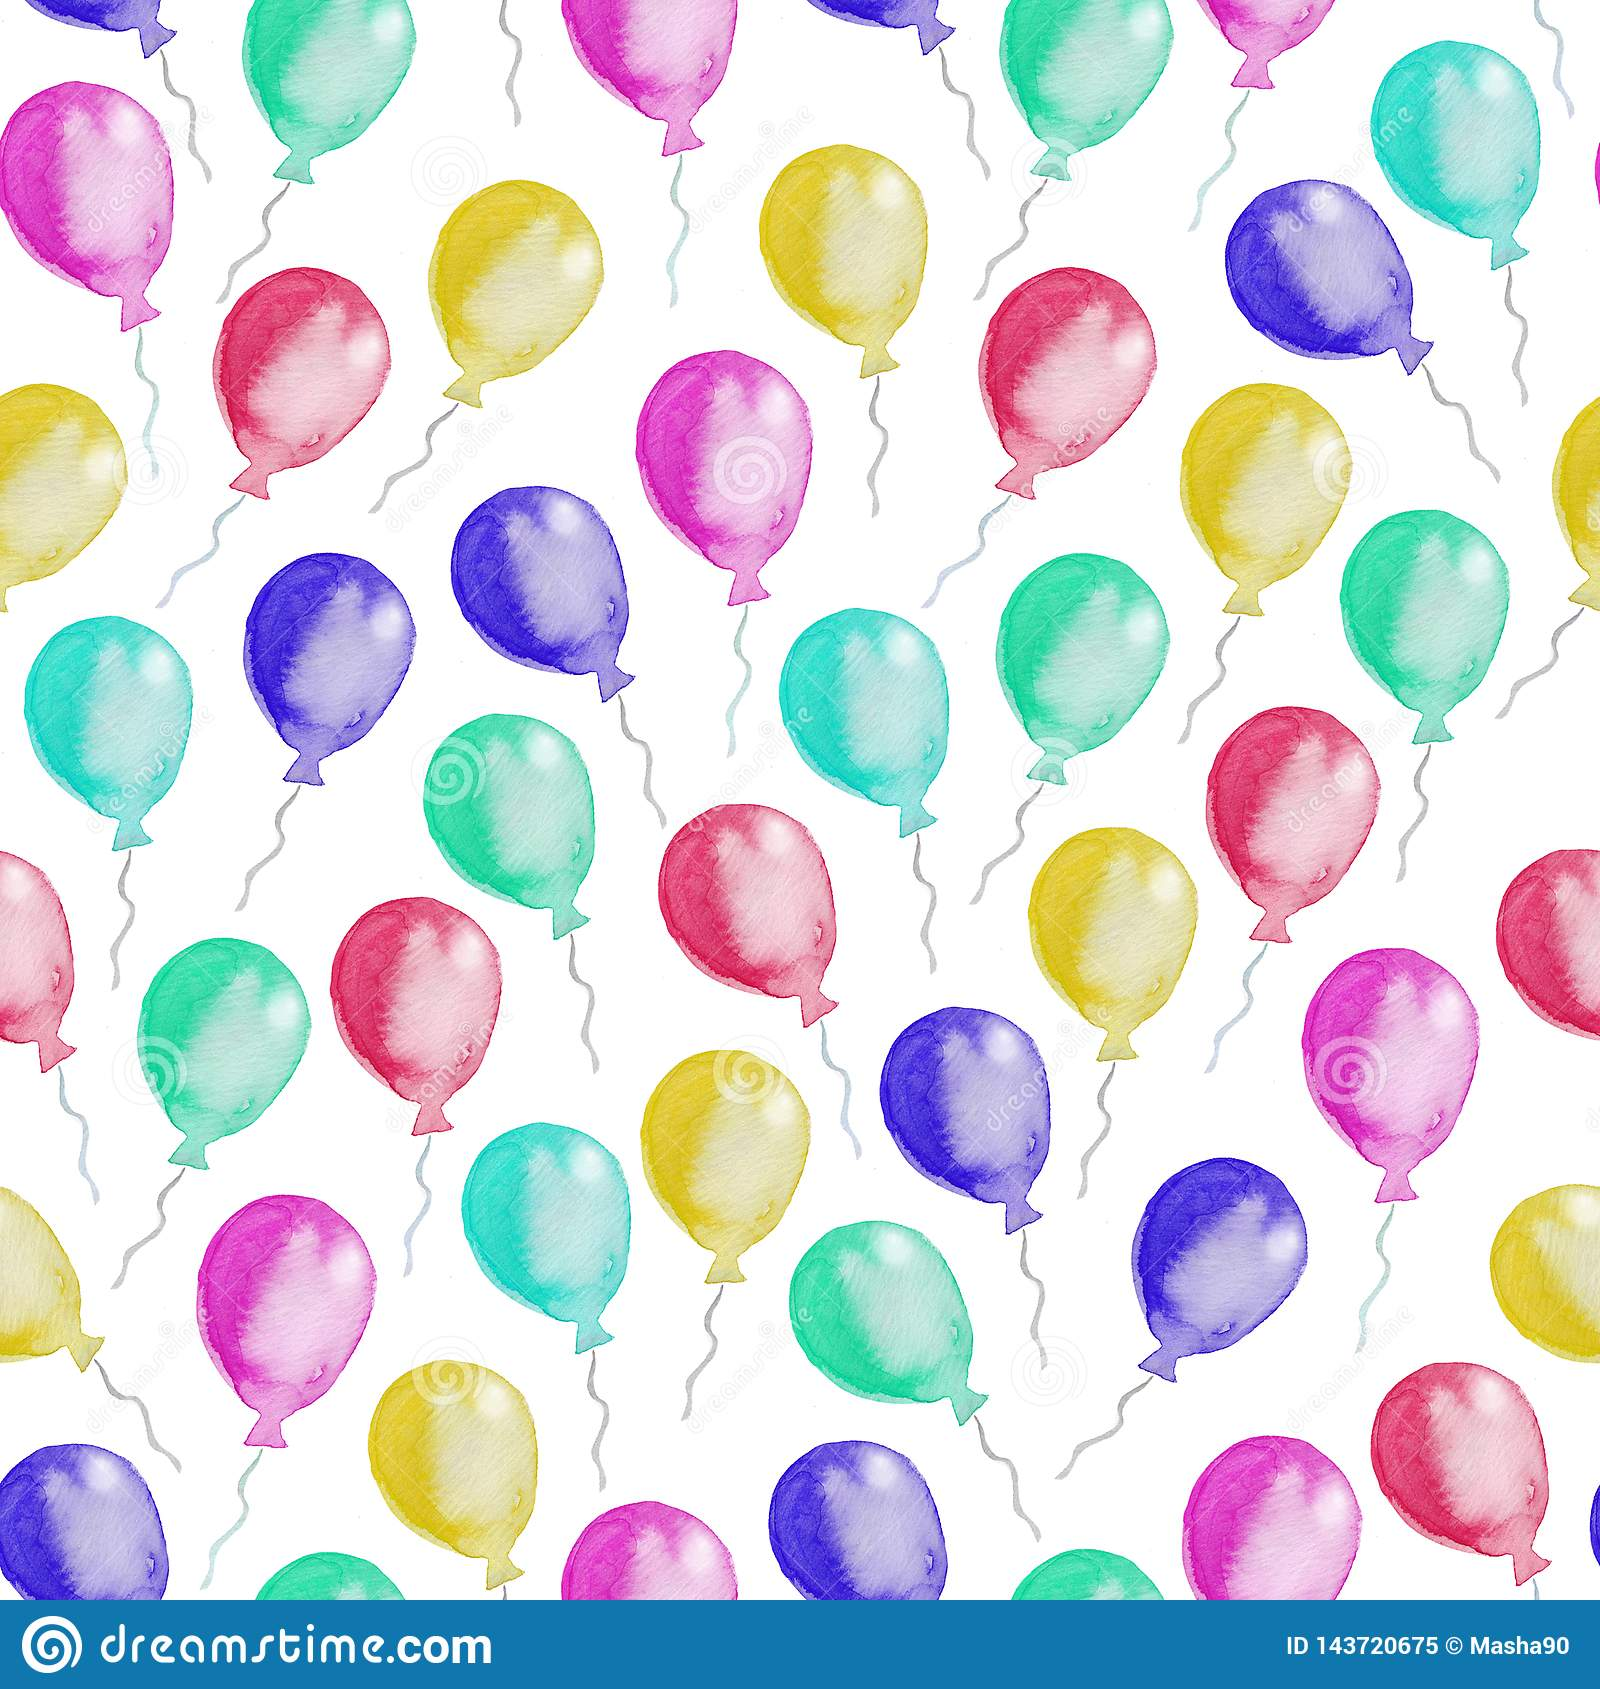 Seamless pattern of colorful balloons. Watercolor illustration